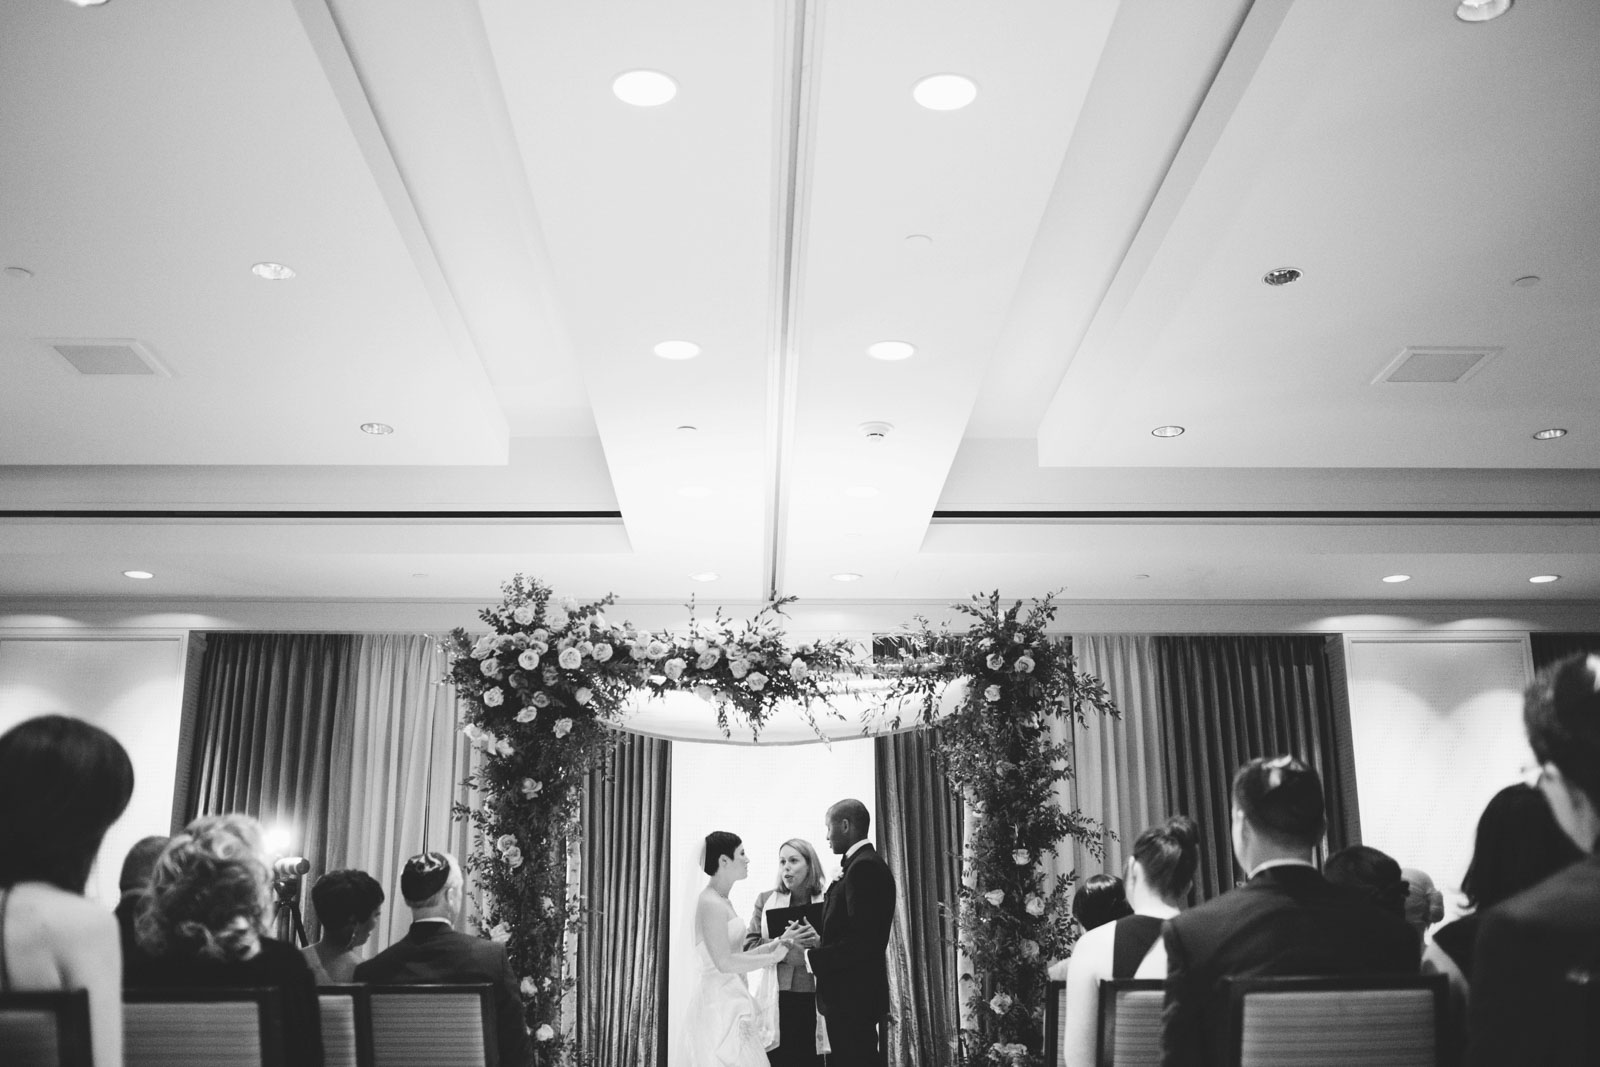 black and white shot of interracial wedding ceremony with dramatic perspective lines in ceiling